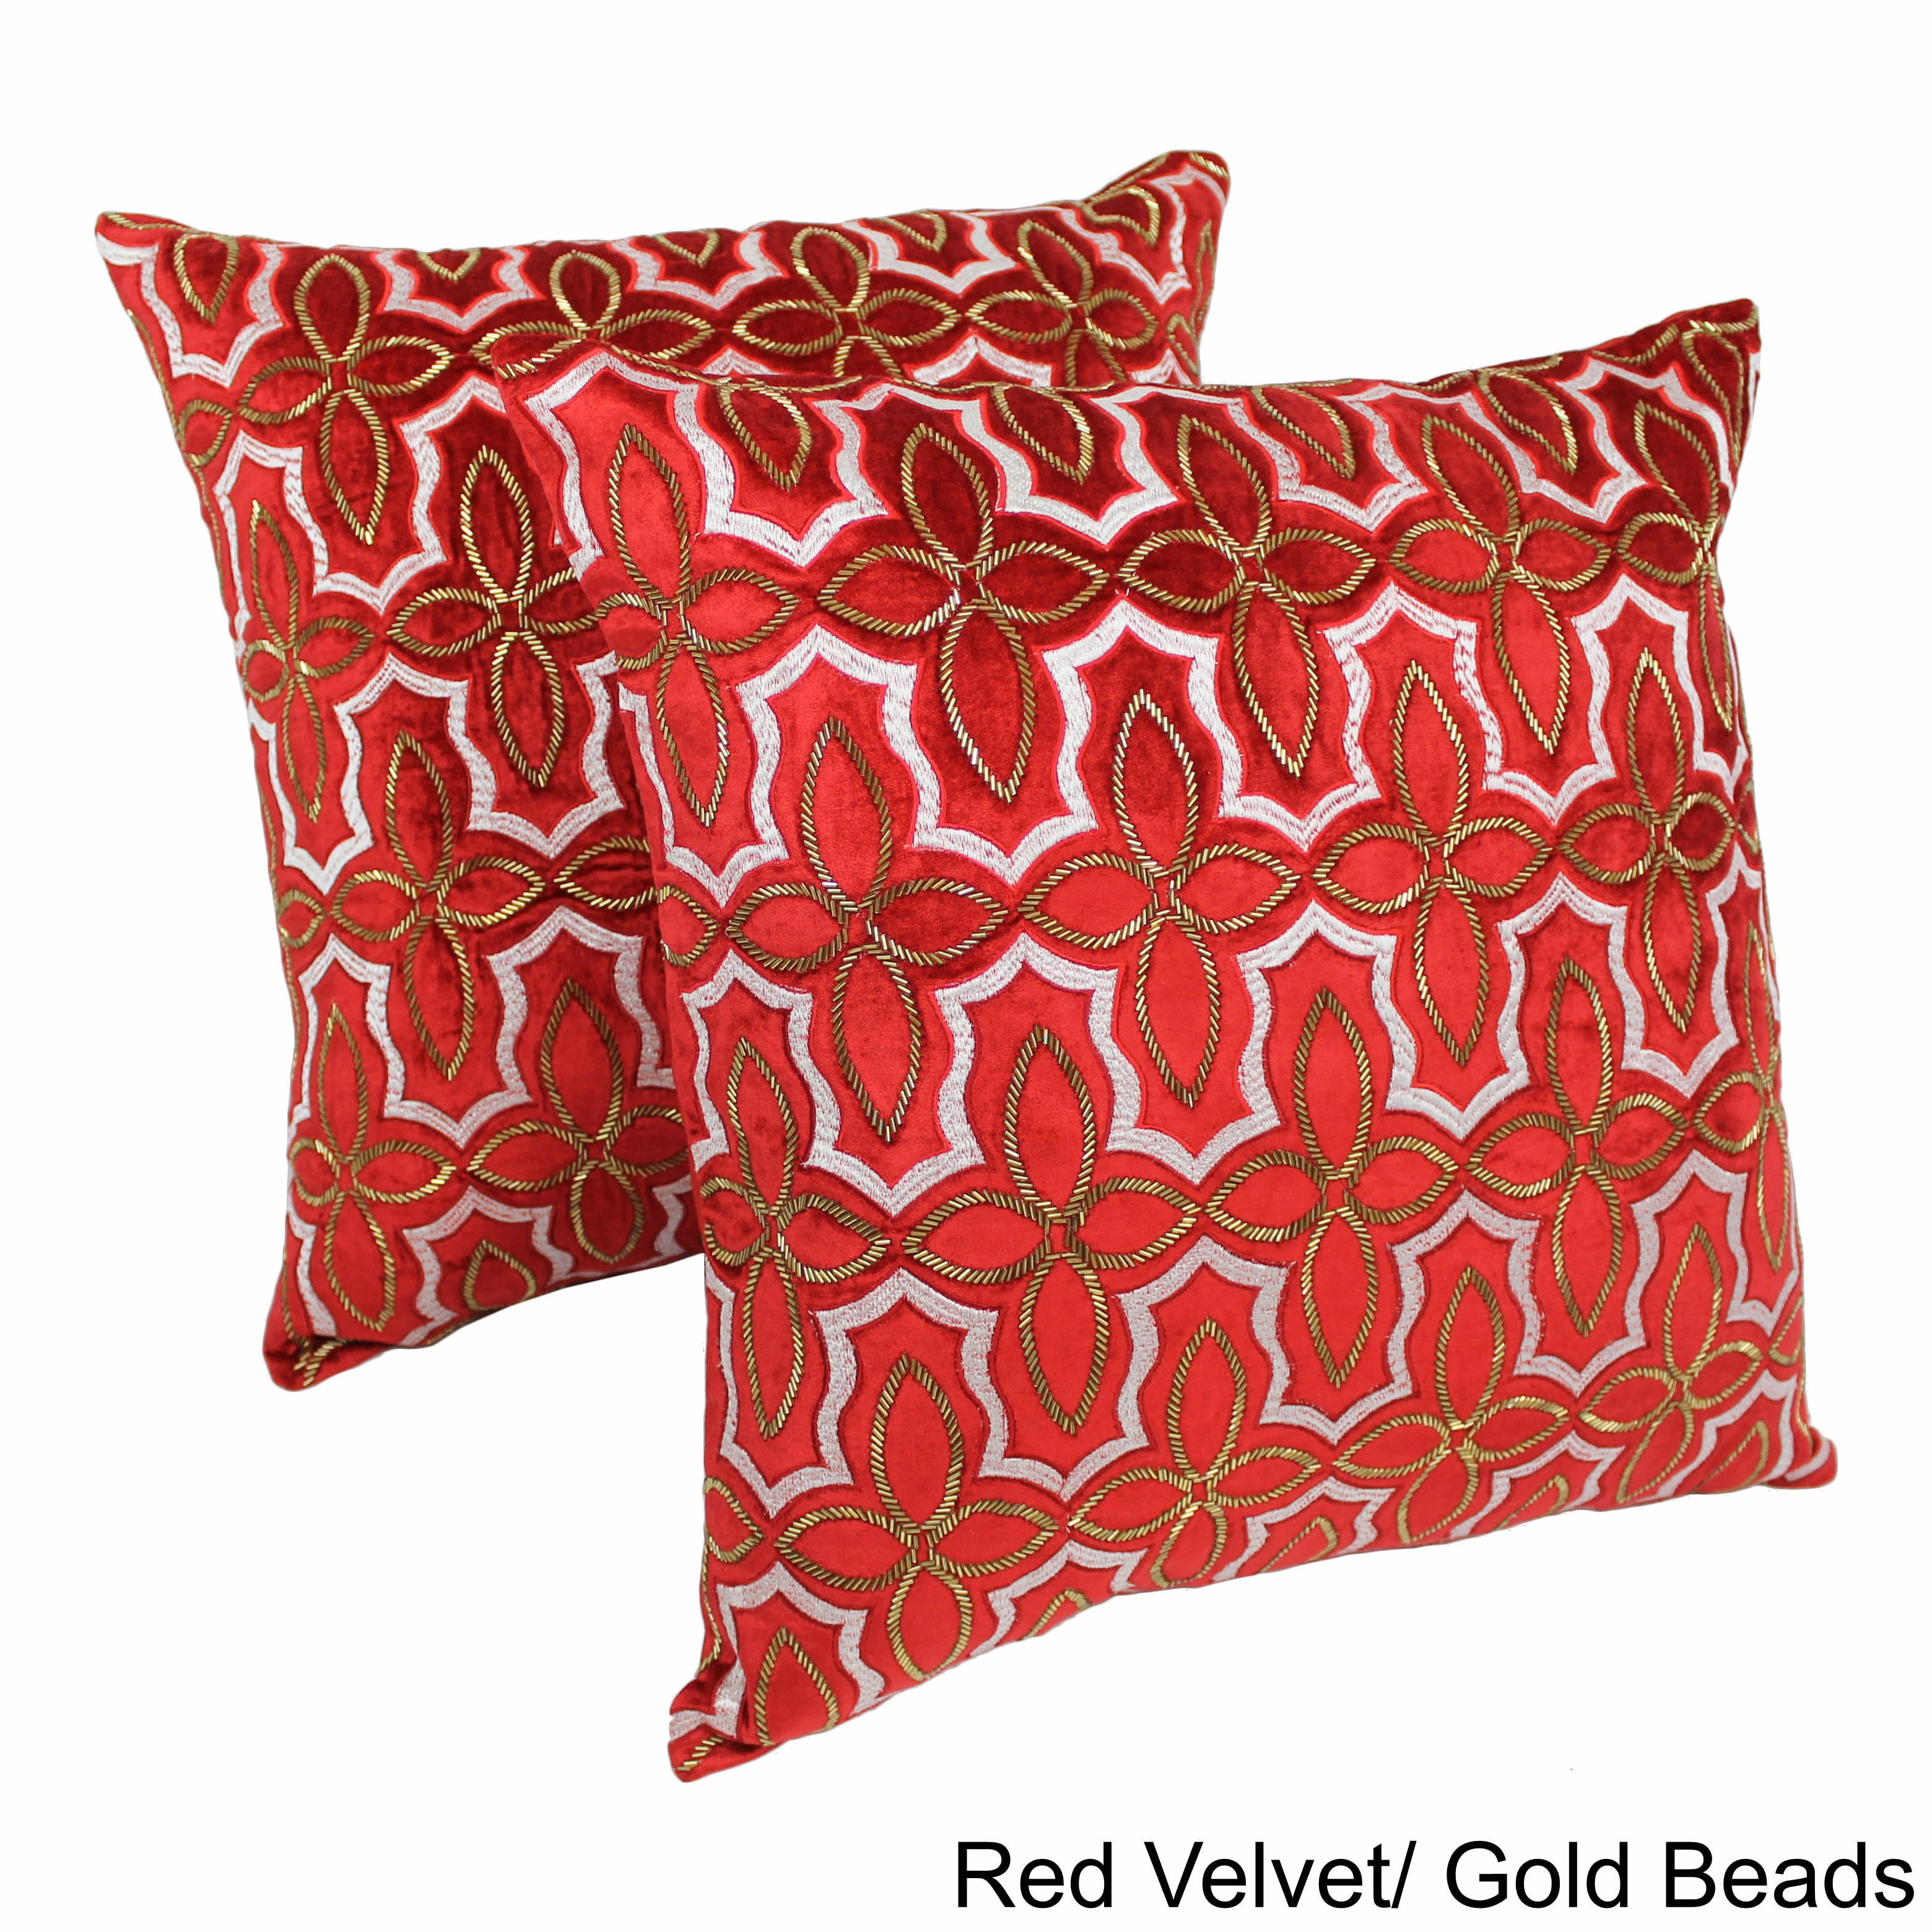 Blazing Needles 20 Inch Moroccan Patterned Beaded Velvet Throw Pillows (Set